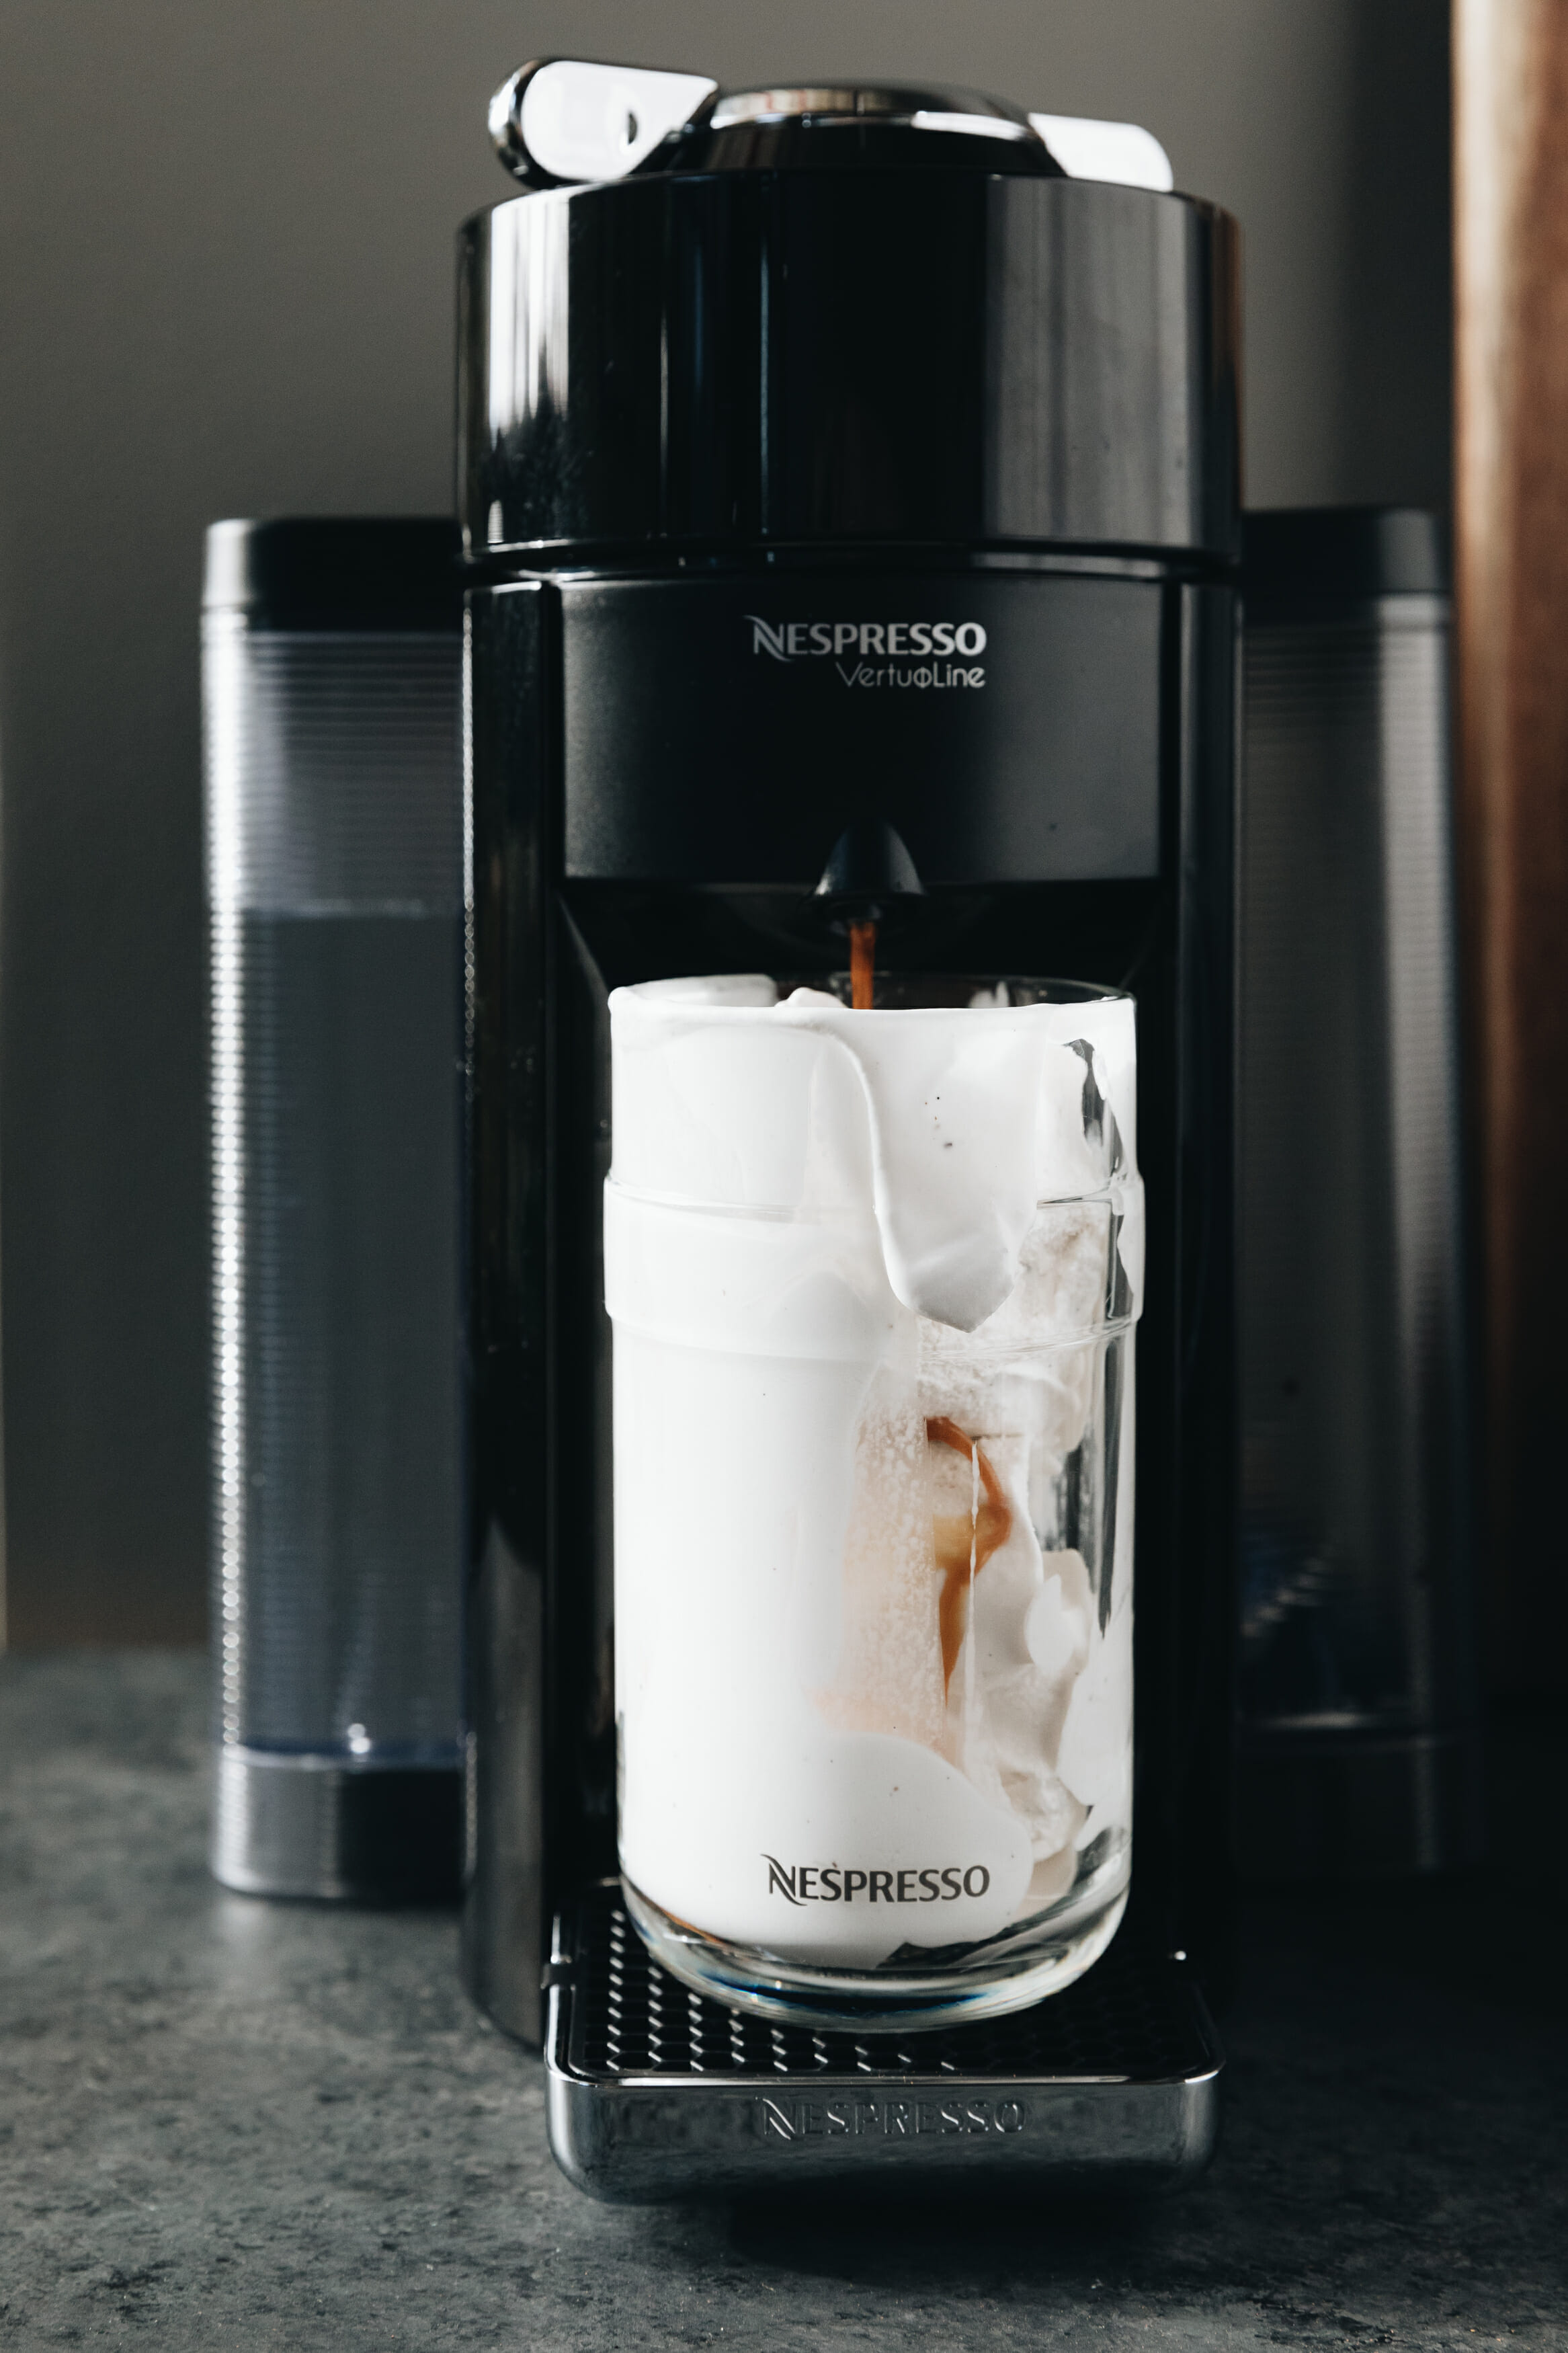 nespresso machine brewing coffee with ice cream